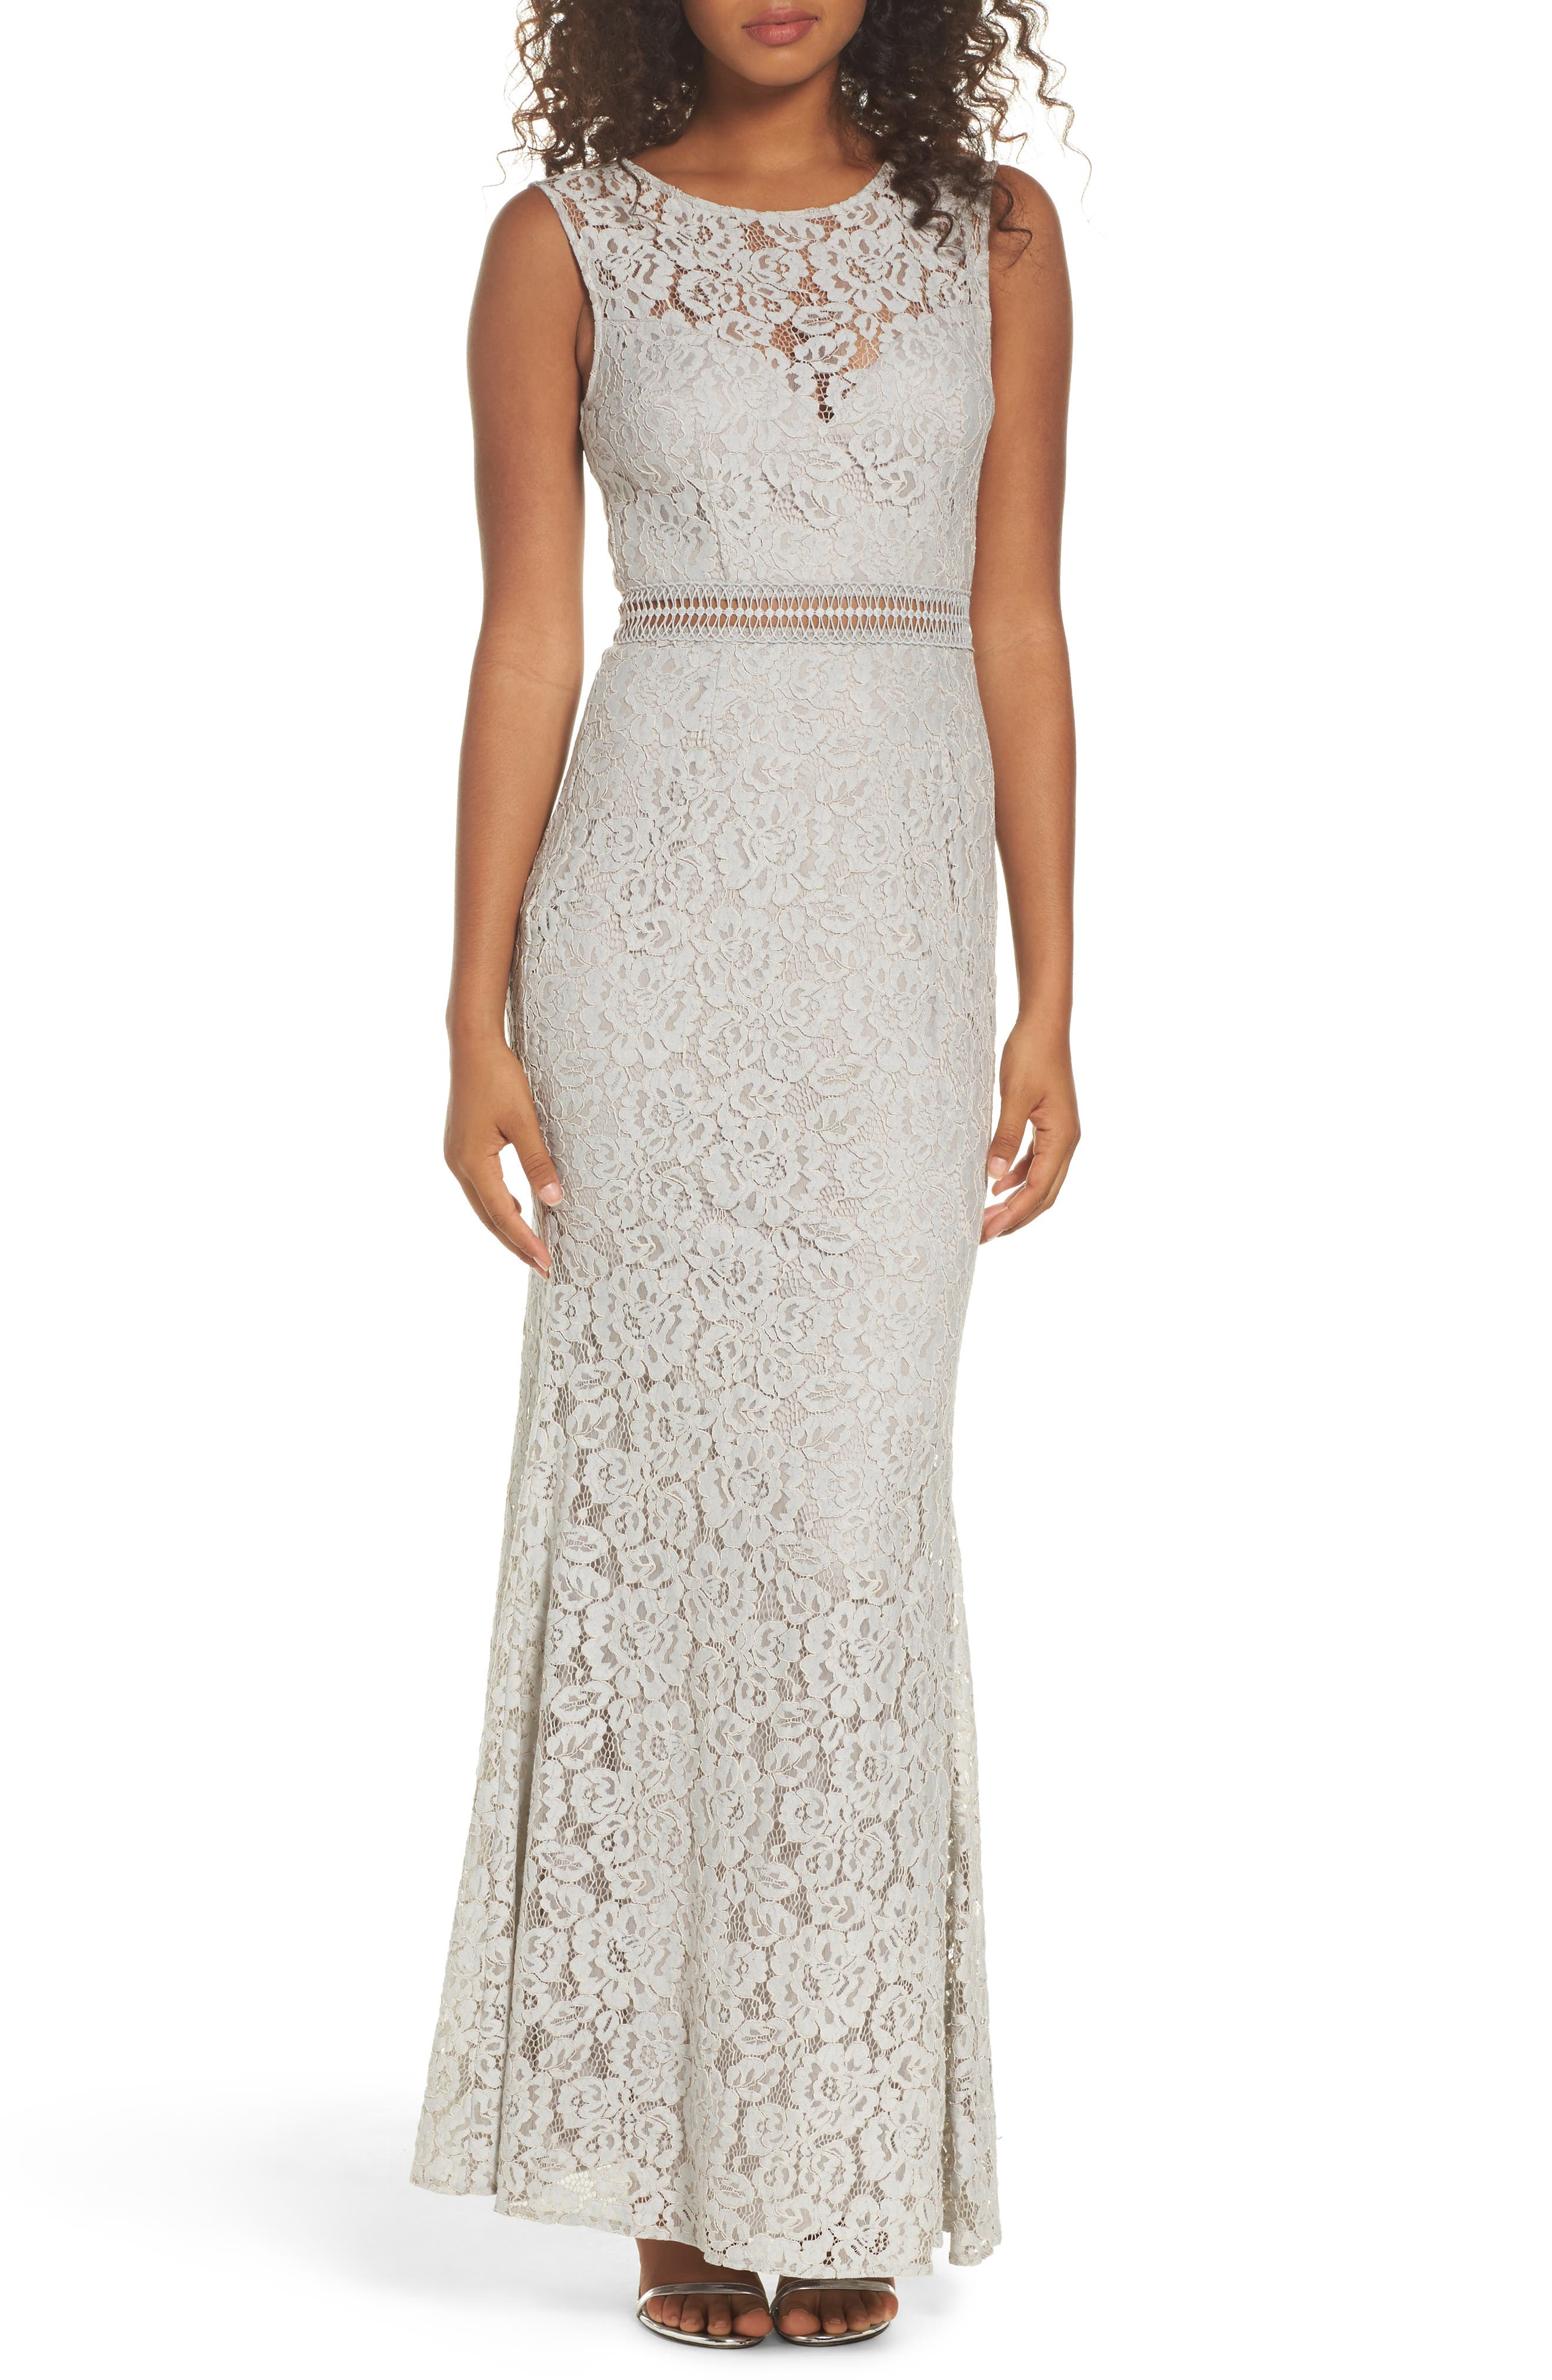 Music of the Heart Lace Maxi Dress,                         Main,                         color, 020